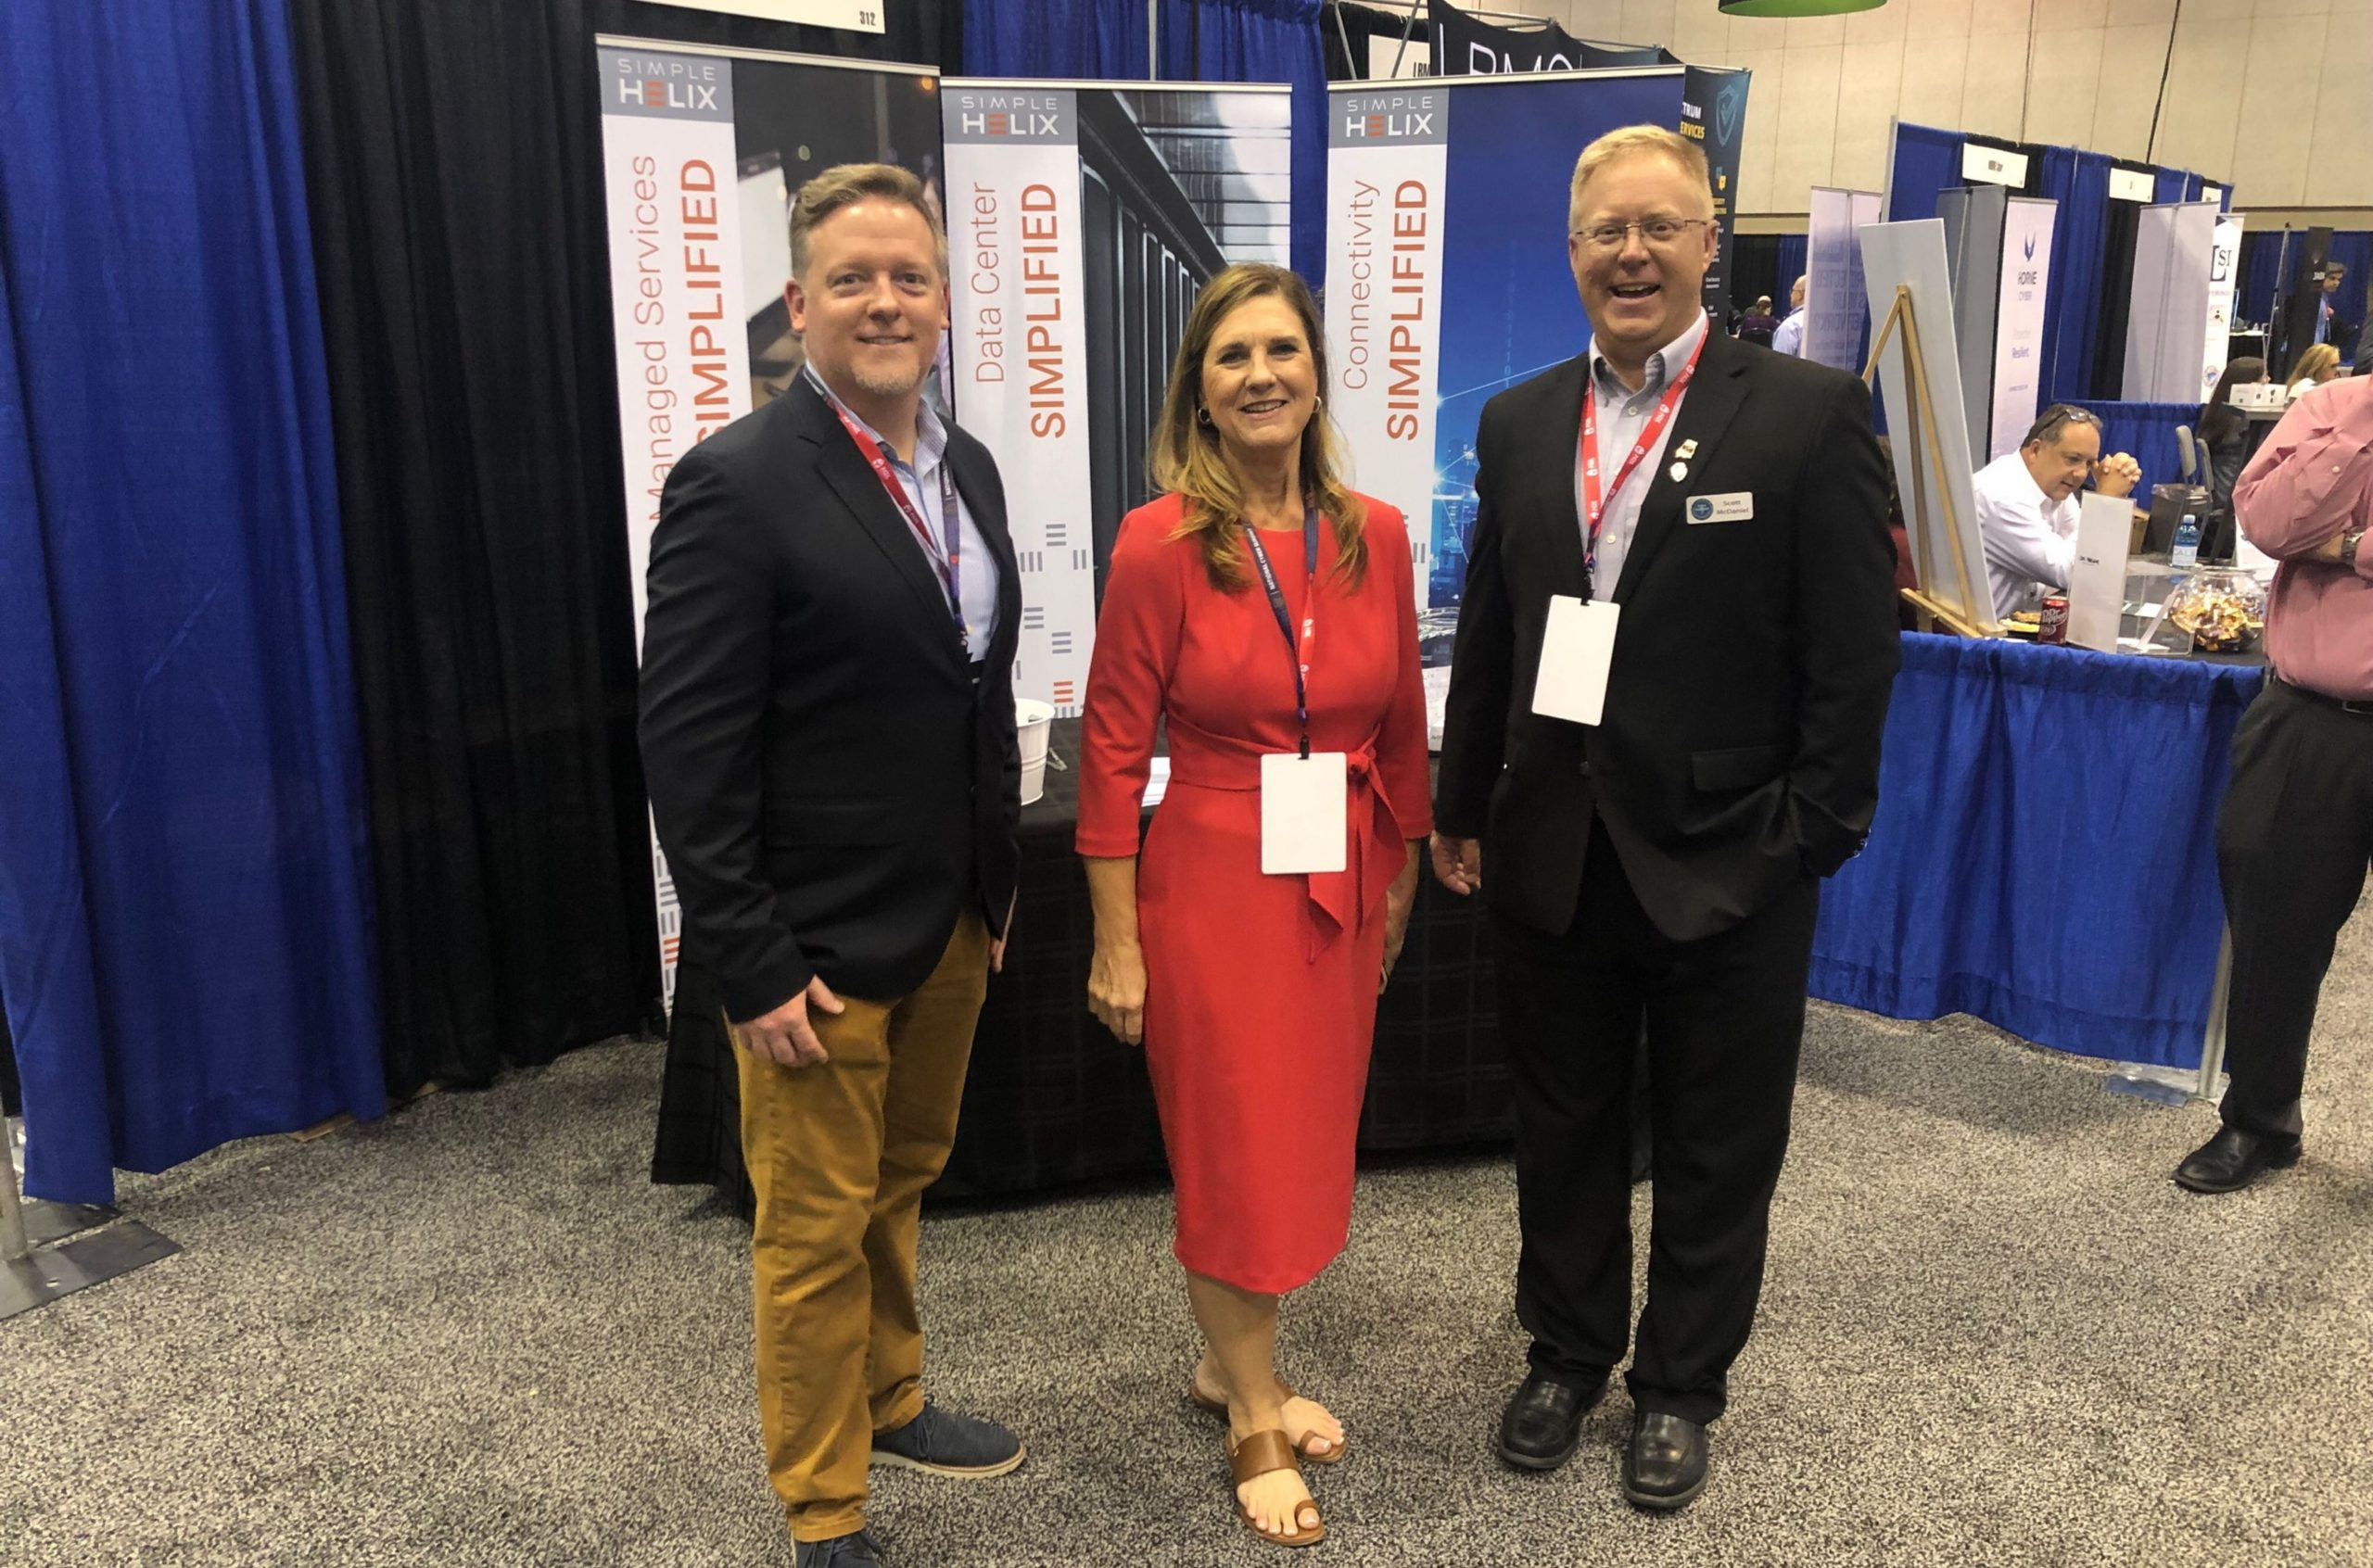 From left to right: Greg Engle, Judy Darwin, and Scott McDaniel